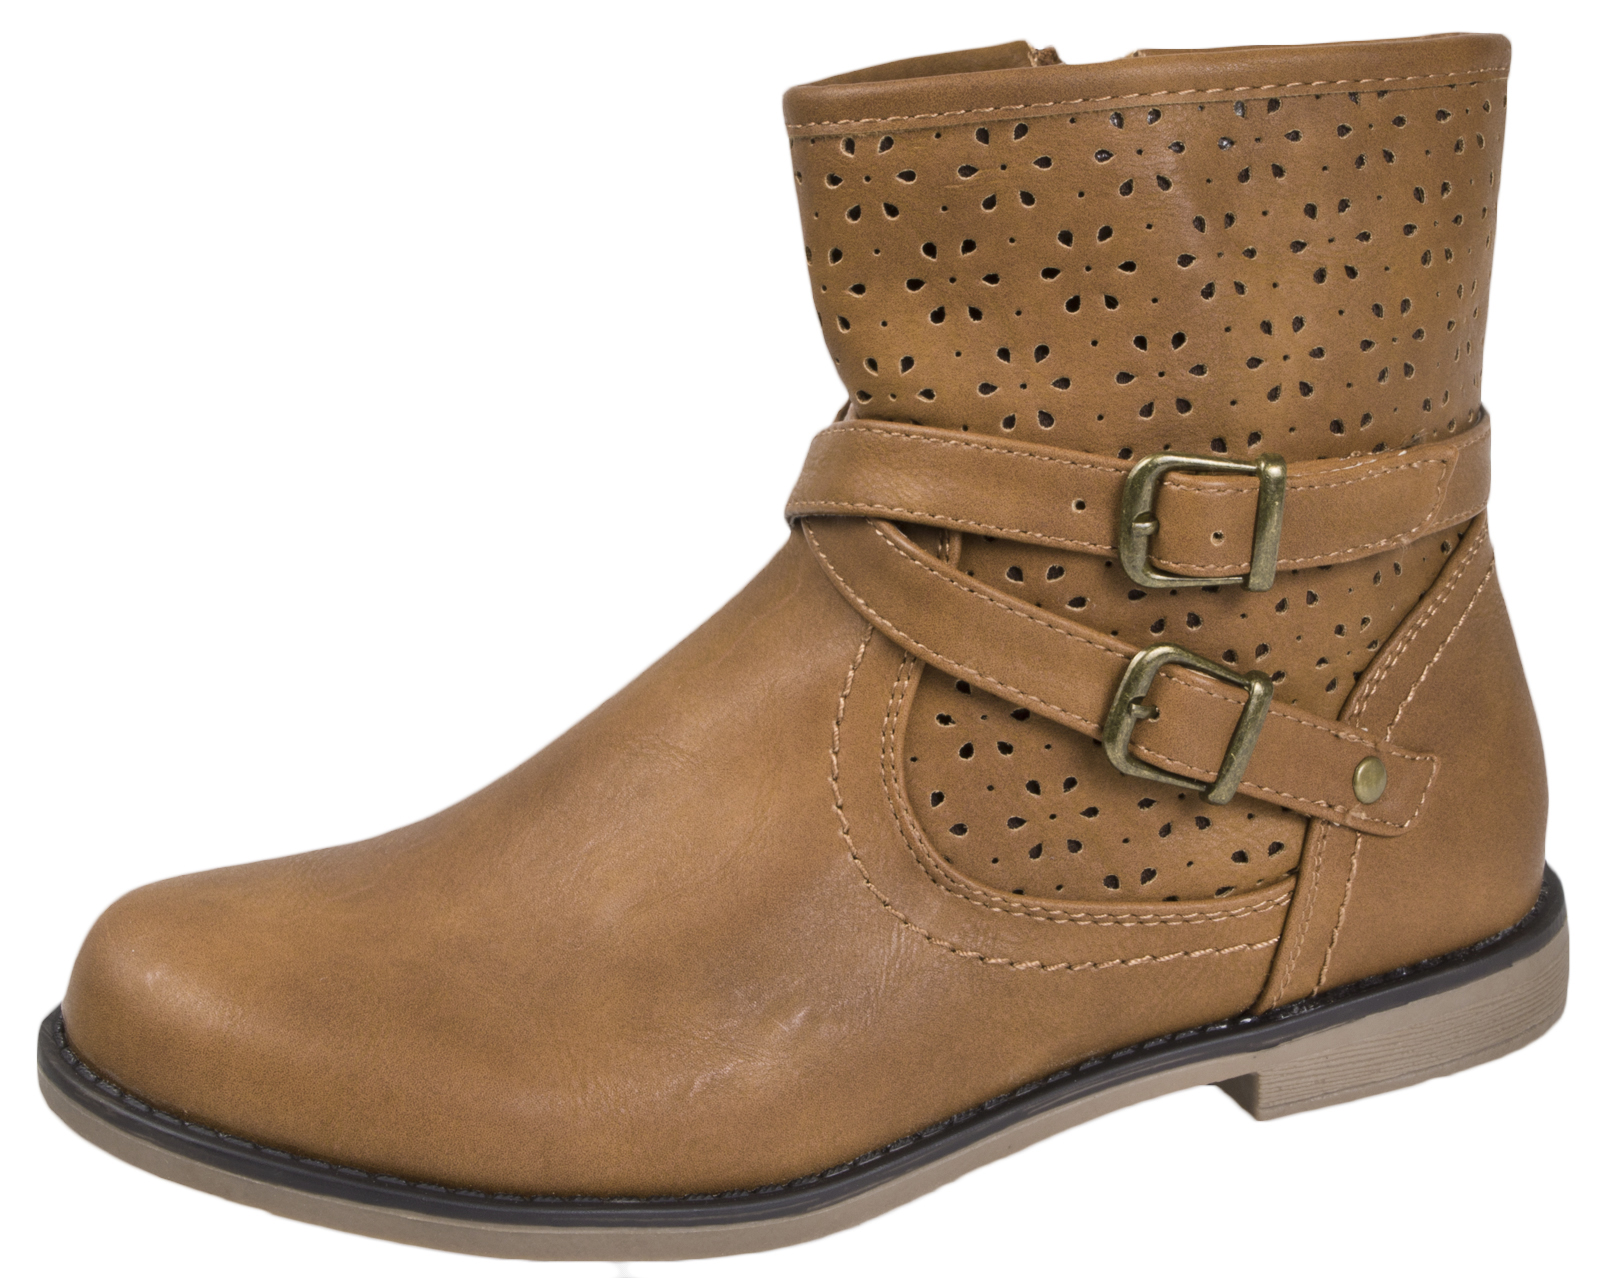 ae51d97c396 Details about Girls Faux Leather Mid Calf Ankle Boots Tan Brown Cut Out  Floral Cowboy Roper